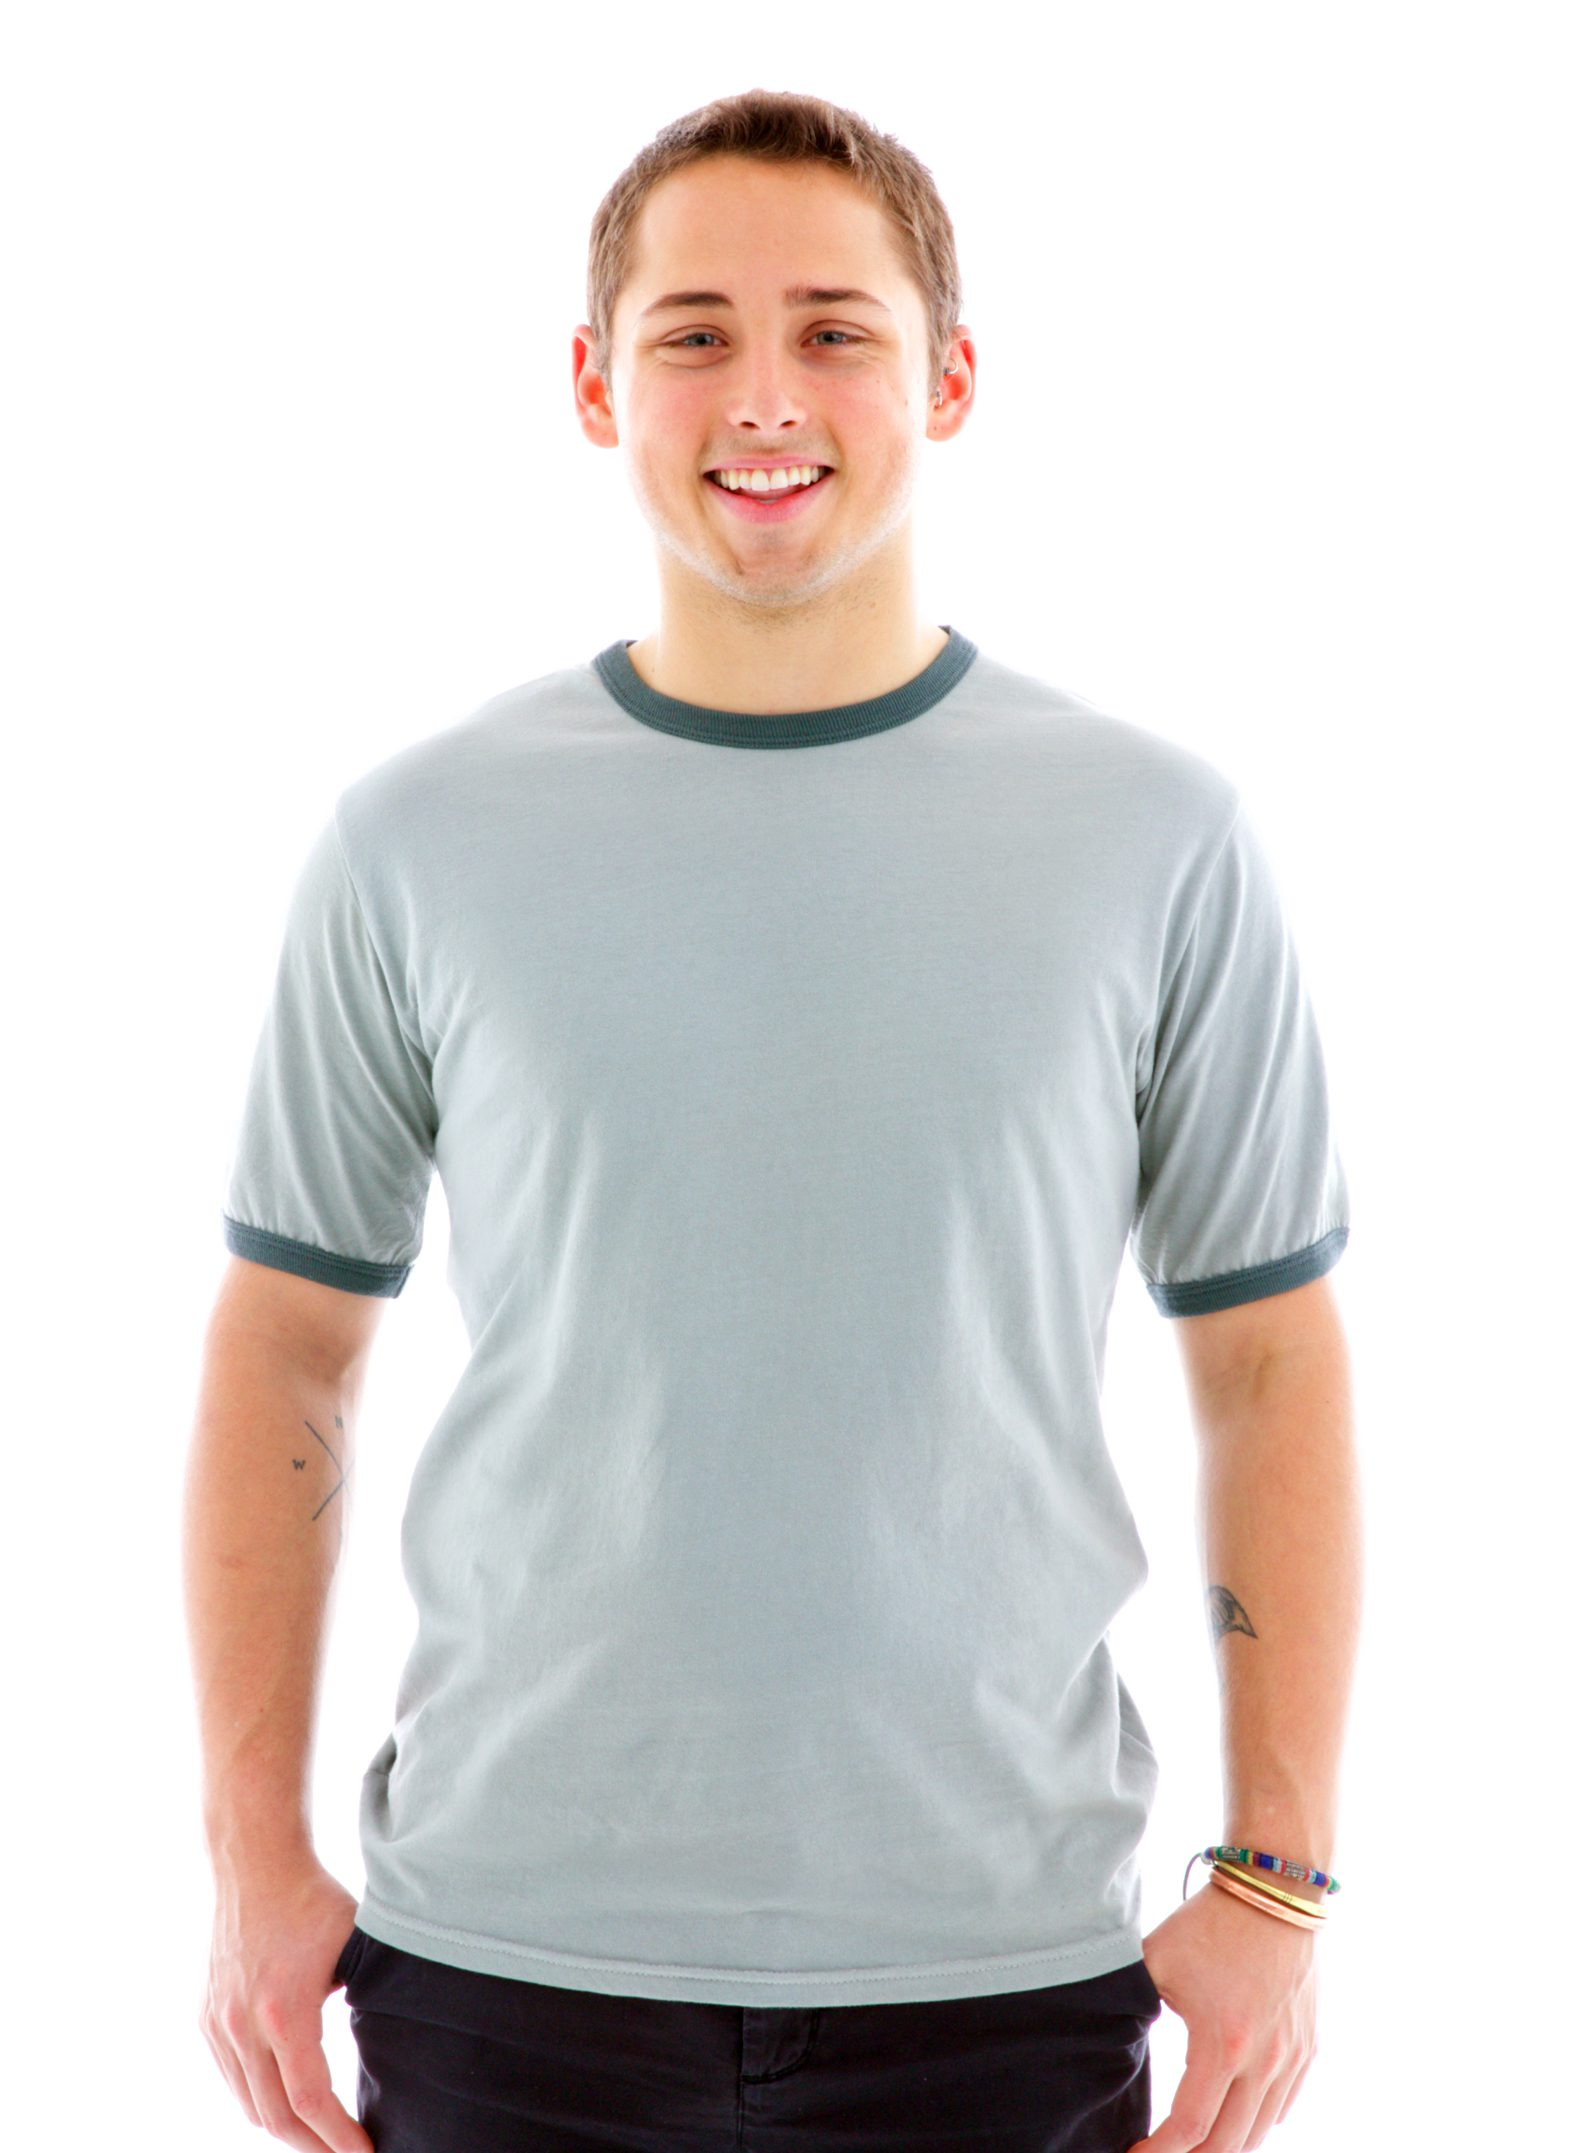 Ringer Crew Short Sleeve T-Shirt Front View